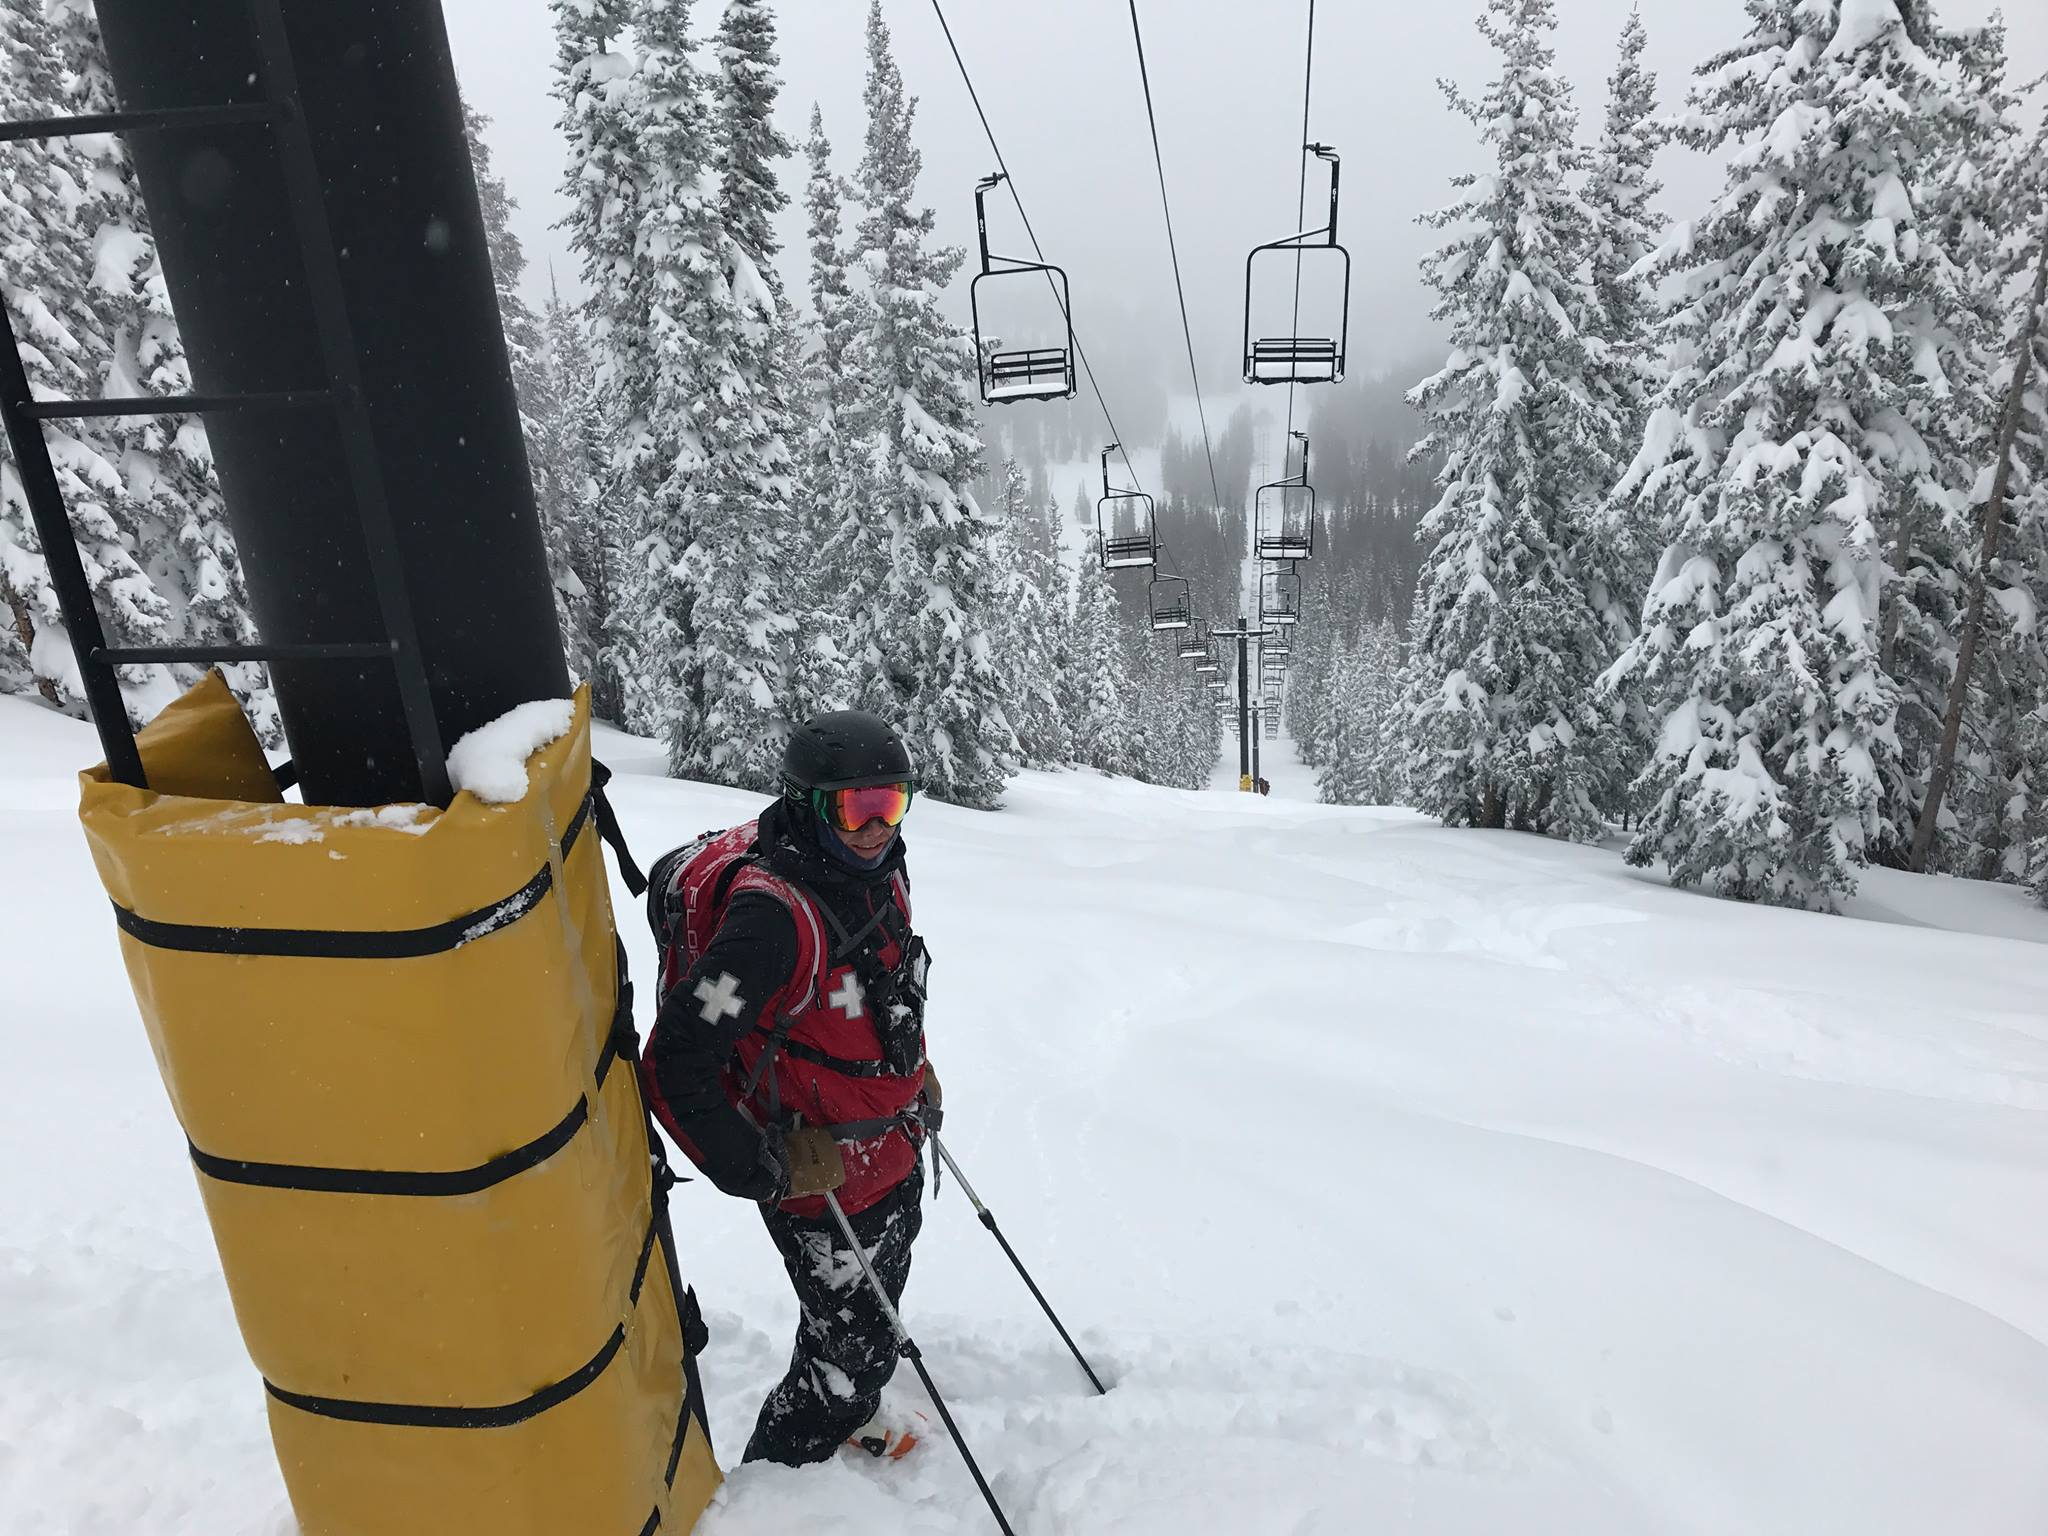 Monarch Mountain reopened today. Powder everywhere. Credit: Monarch Mountain FB page